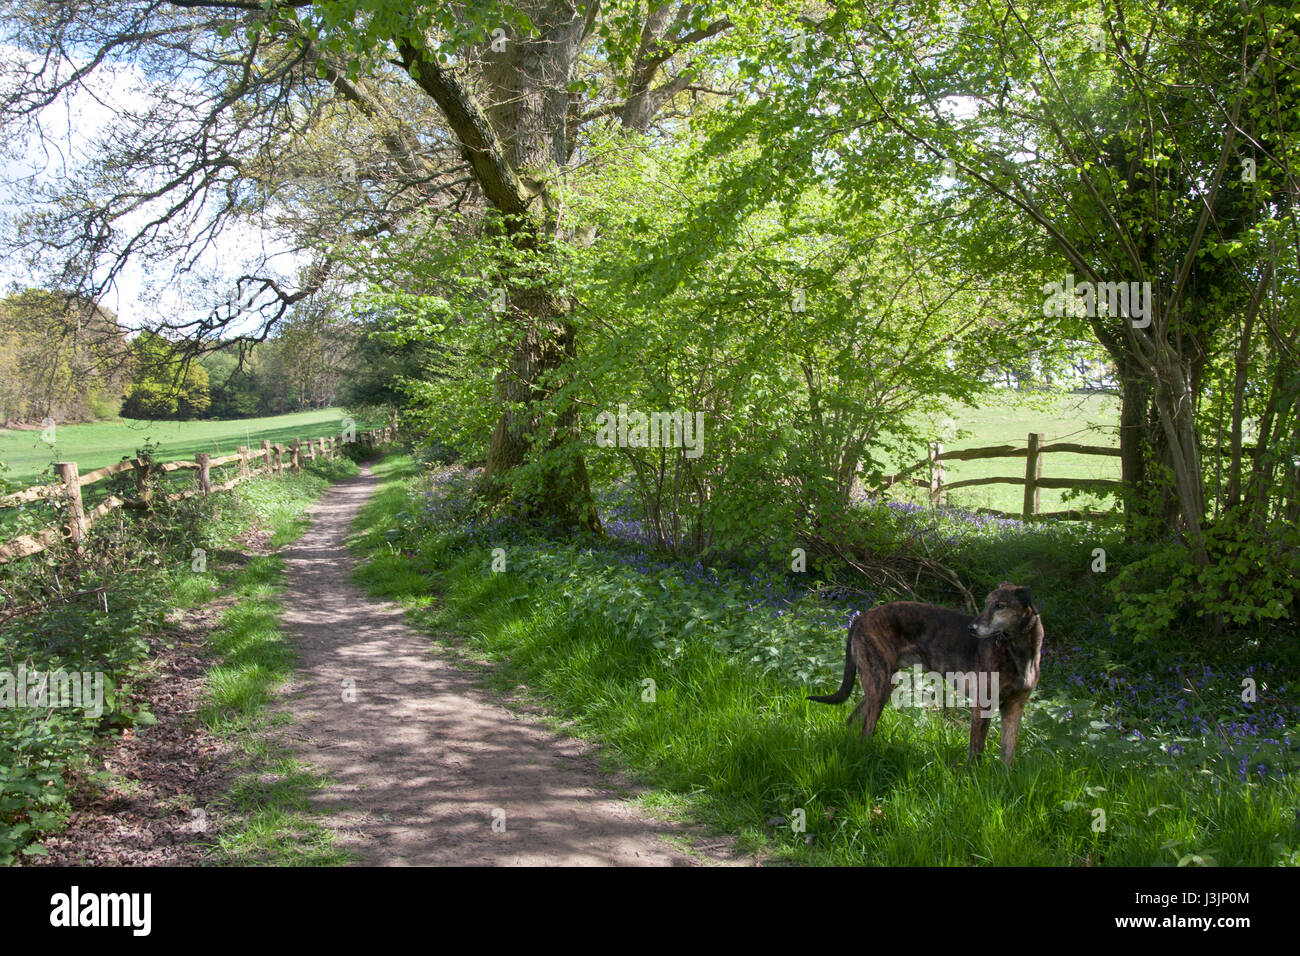 Bluebell Woods in Lynchmere nr Haslemere, Surrey Stockbild